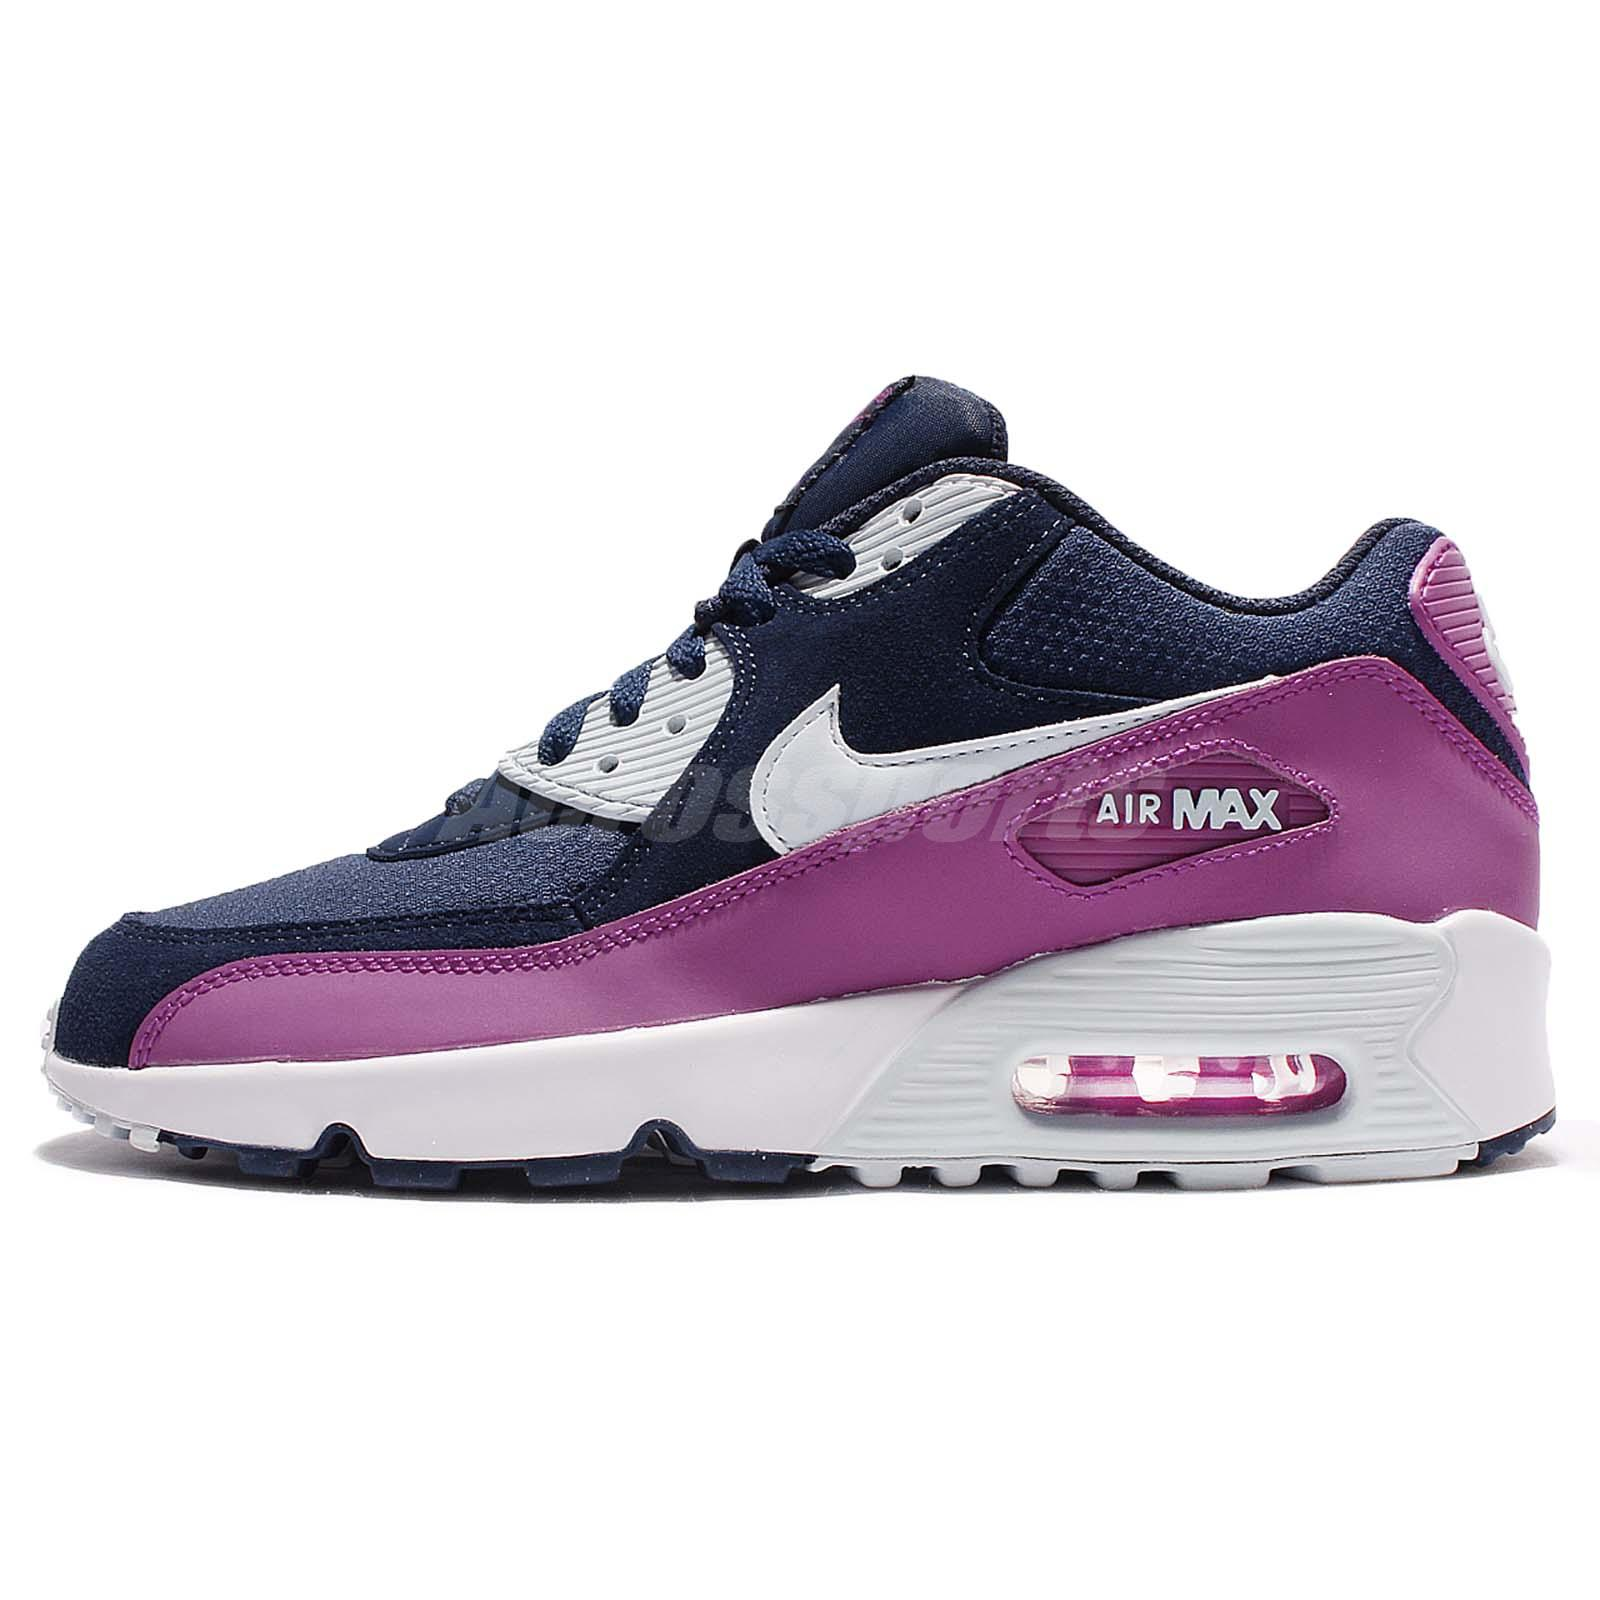 fb40cab4d3 ... womens black green purple shoes 1fd2a 292ec; top quality air max girls  runners nike air max 90 9c2bb a6182